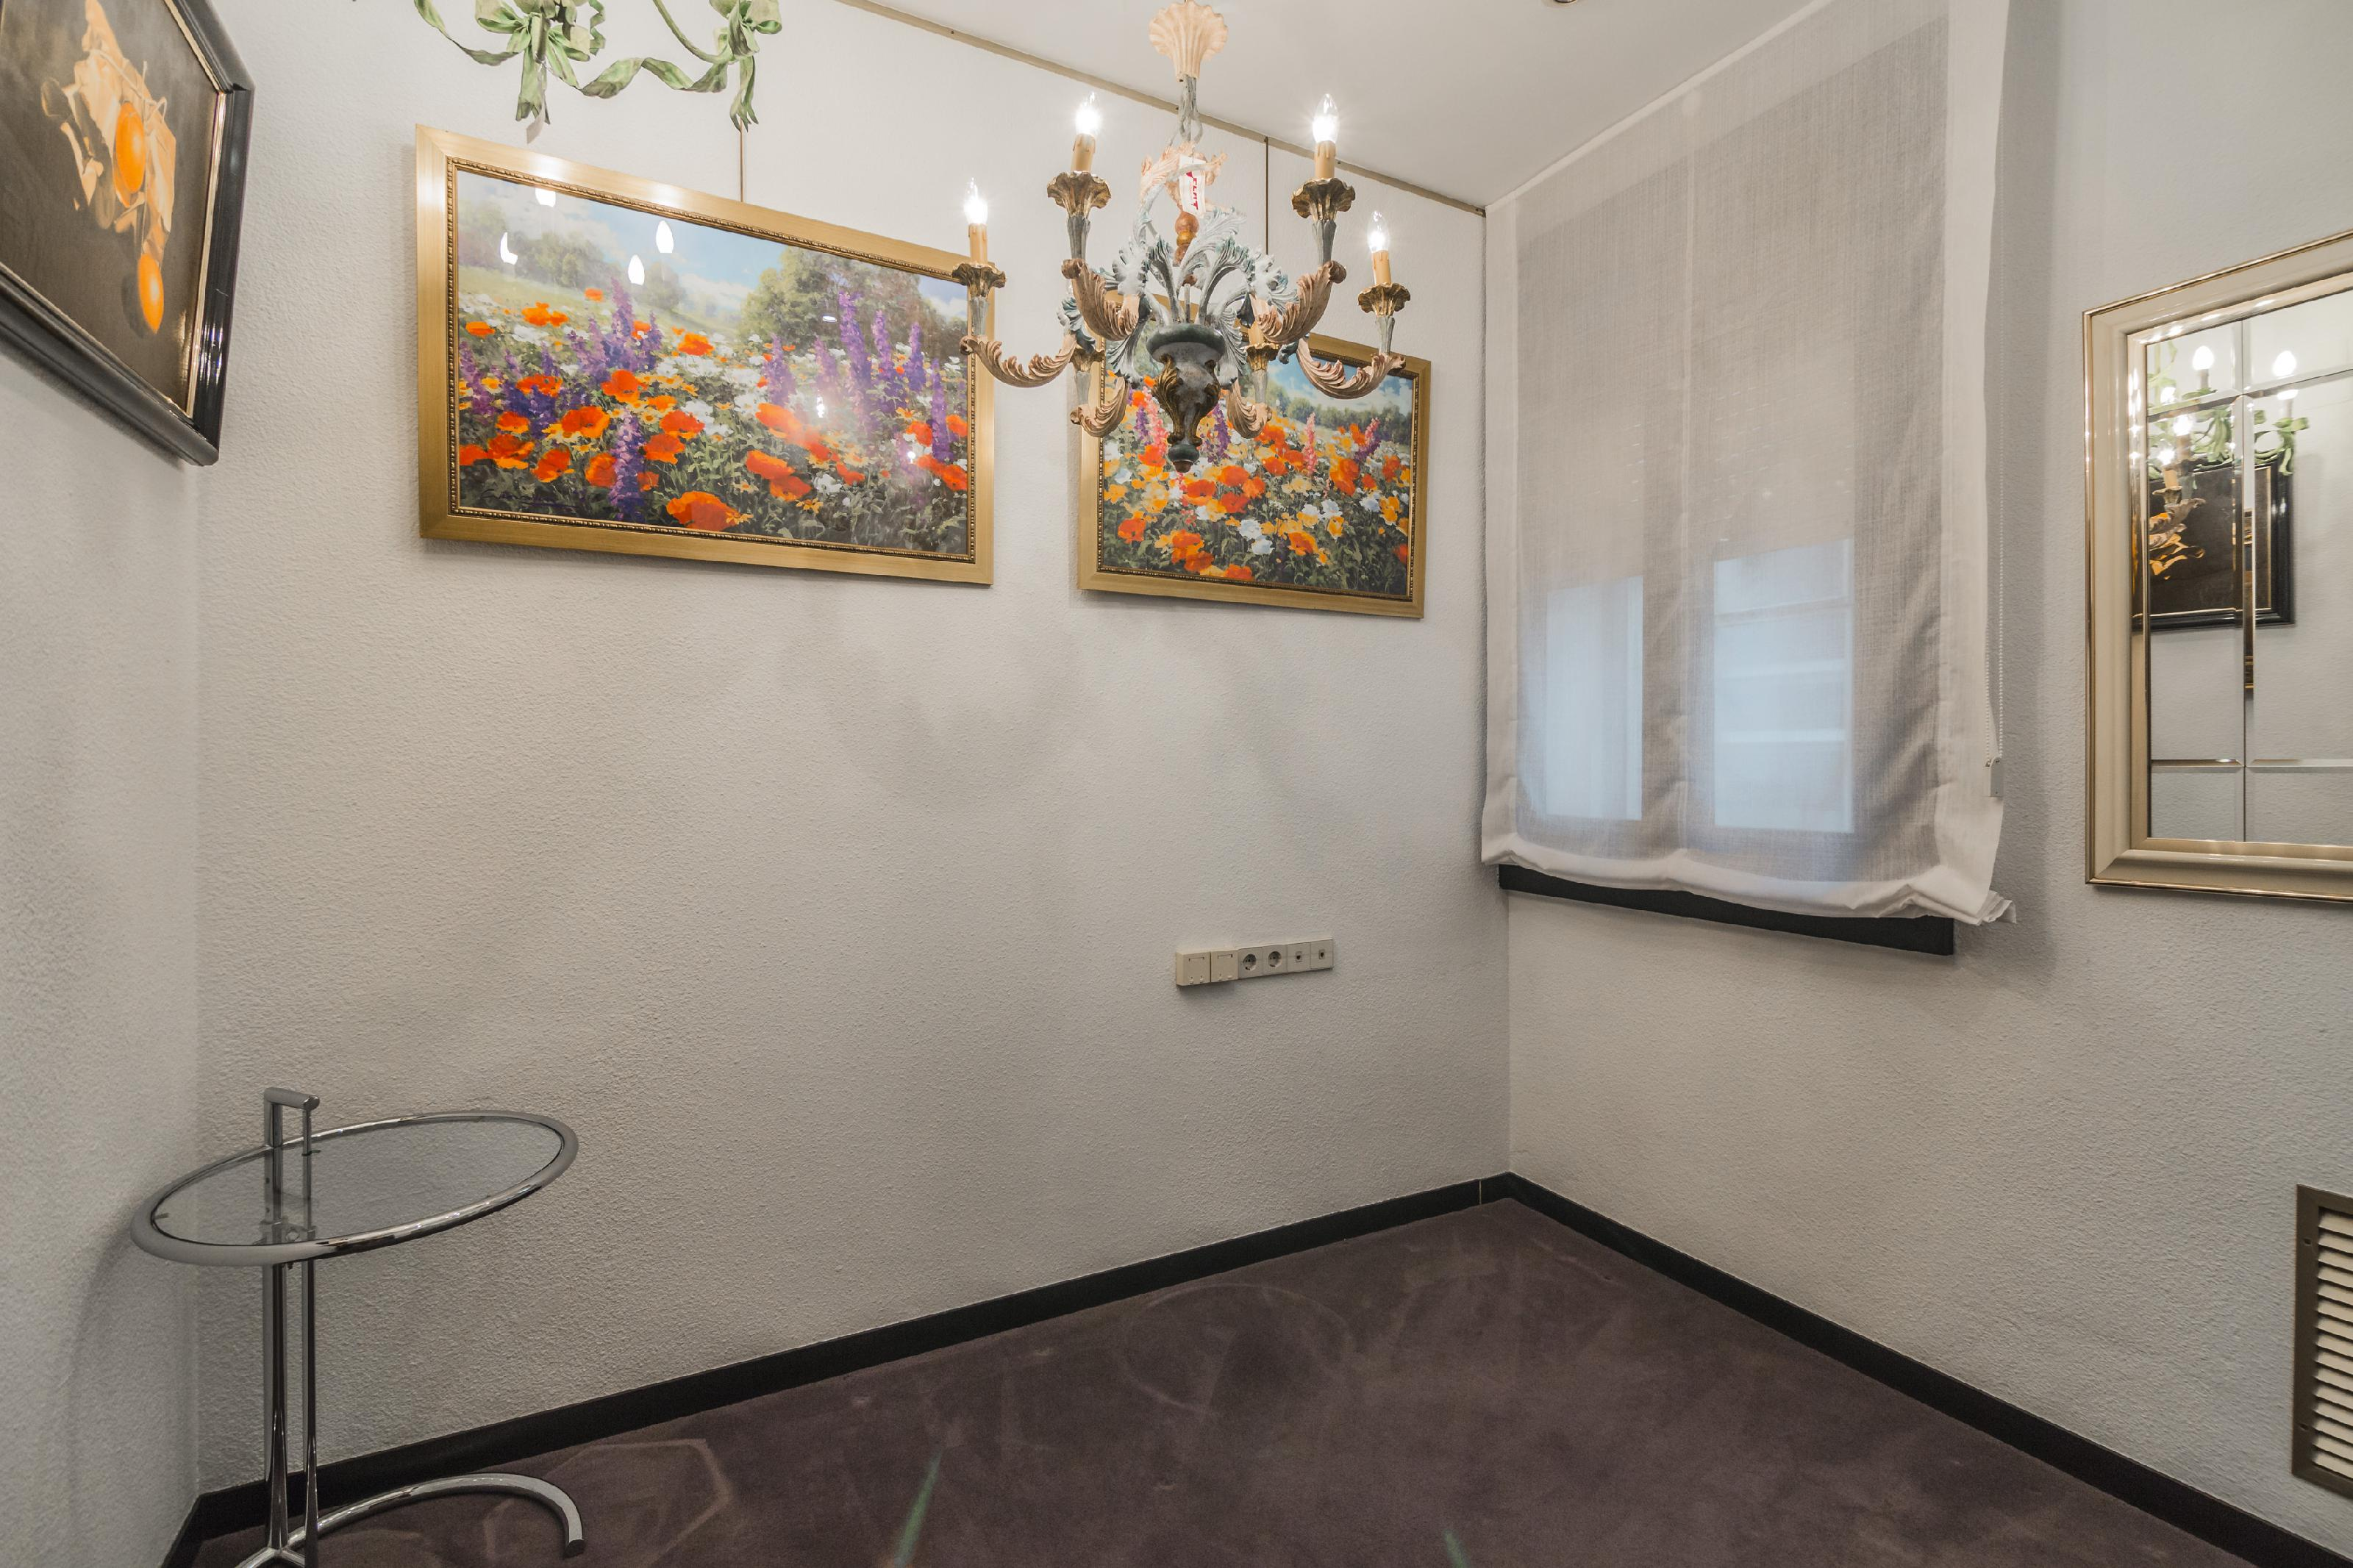 223855 Penthouse for sale in Sarrià-Sant Gervasi, Sant Gervasi-Galvany 16